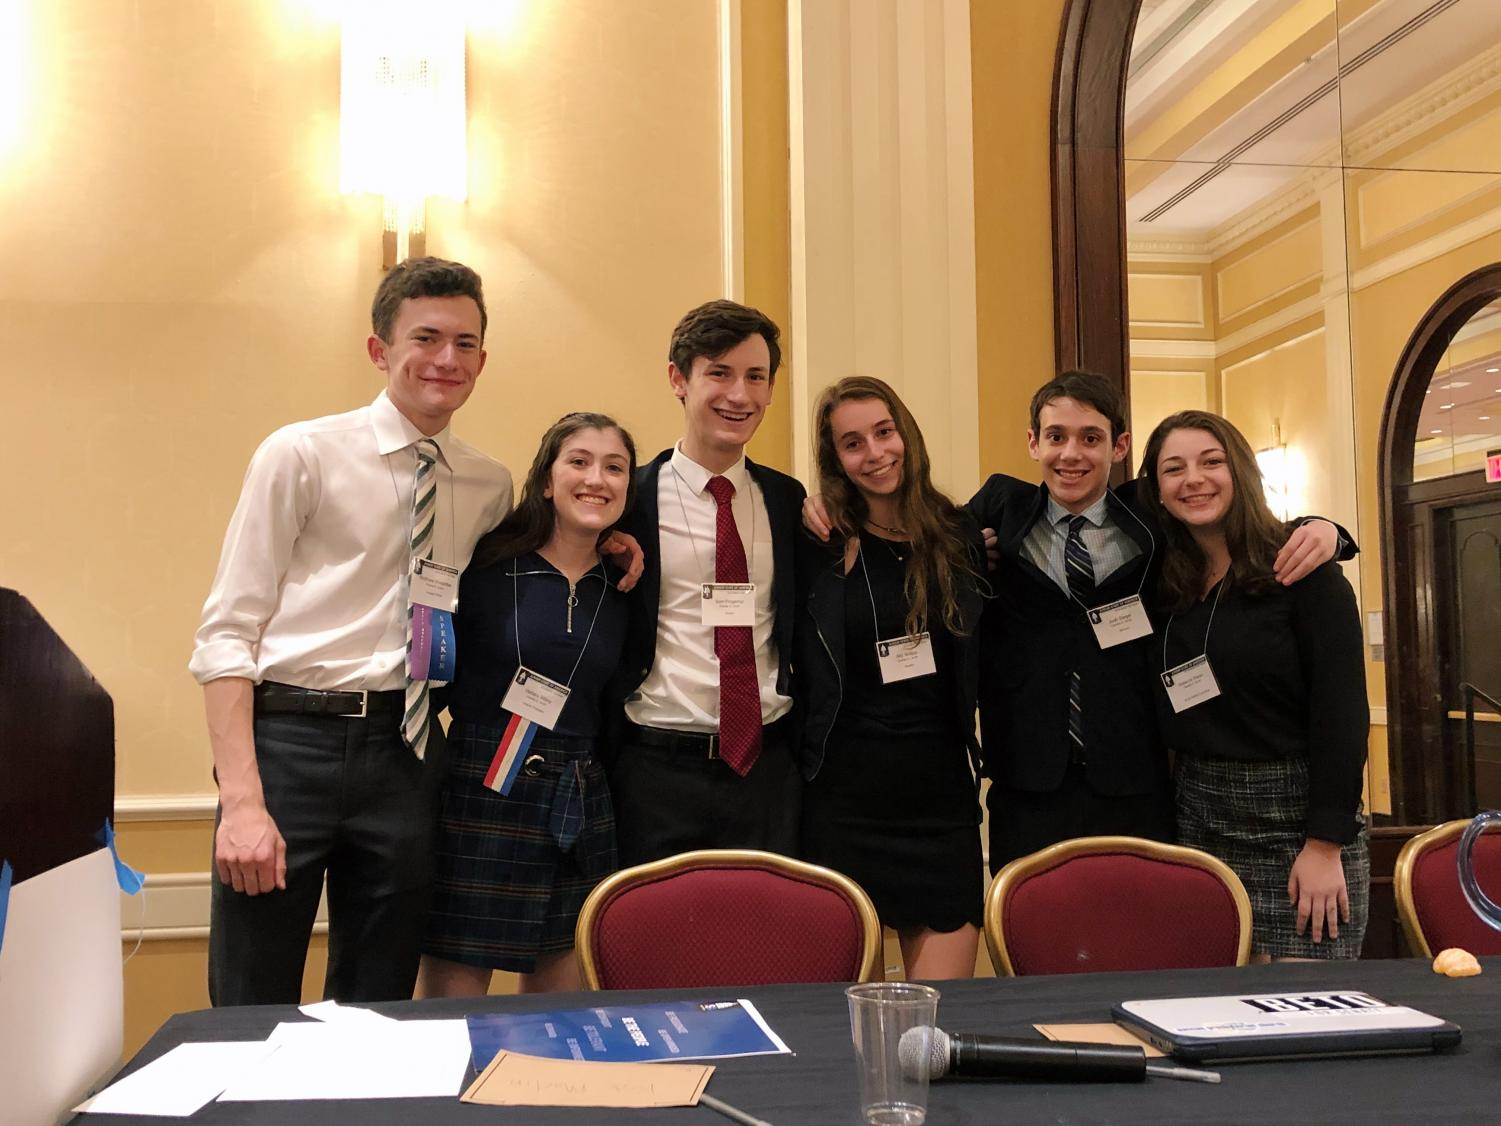 Junior Matthew Weiseltier was one of 53 CESJDS students to attend the convention. He is also a part of the school's chapter leadership, as a member of the regional cabinet.